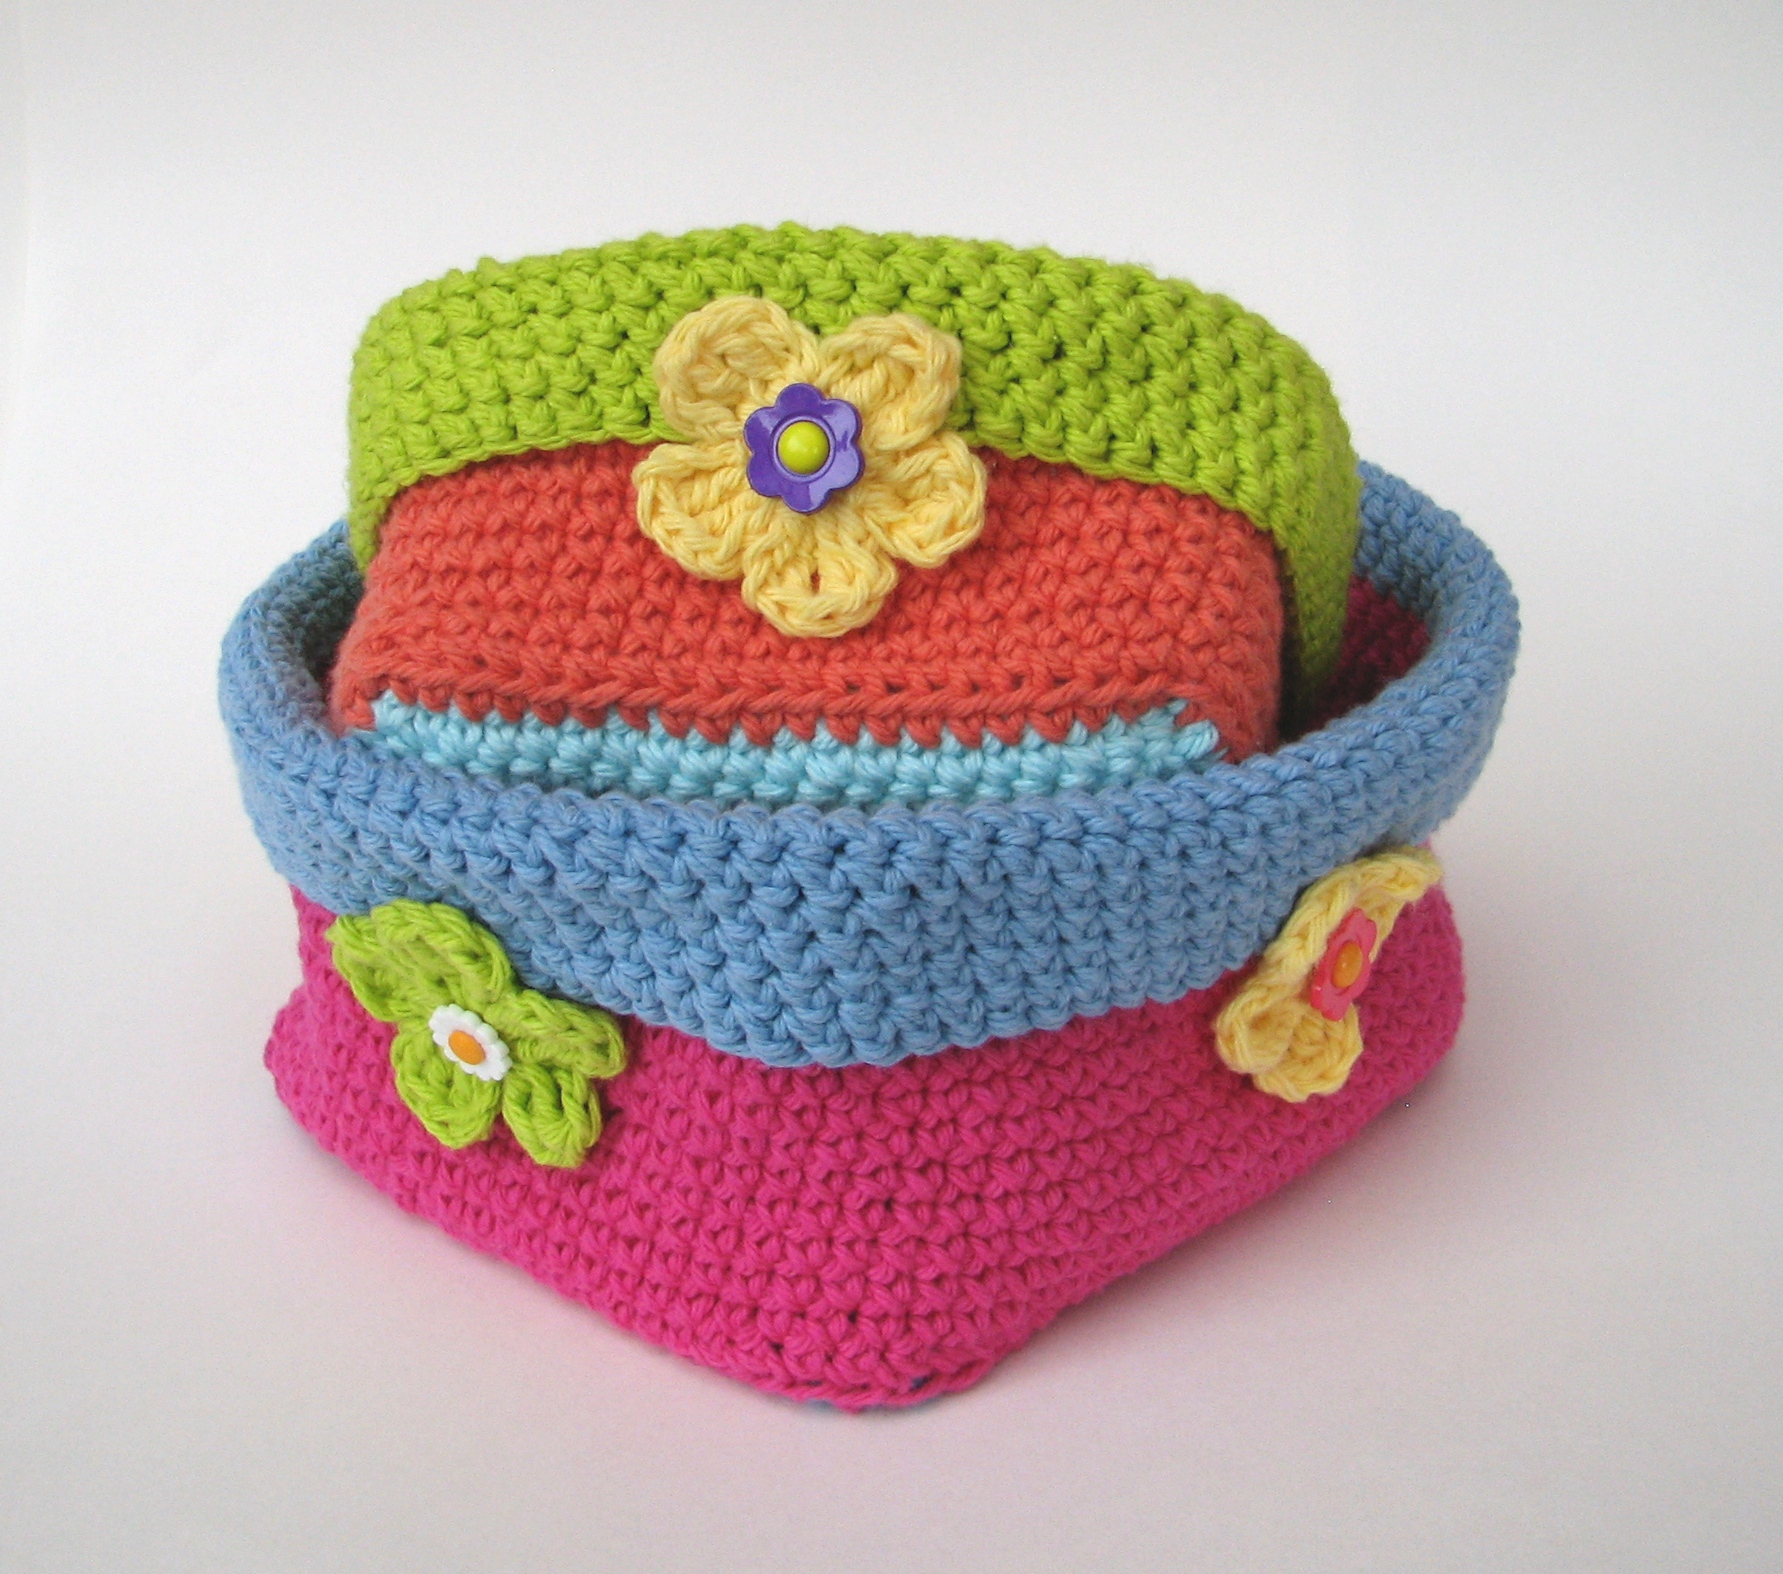 Crochet Square Patterns Crochet Square Basket 2